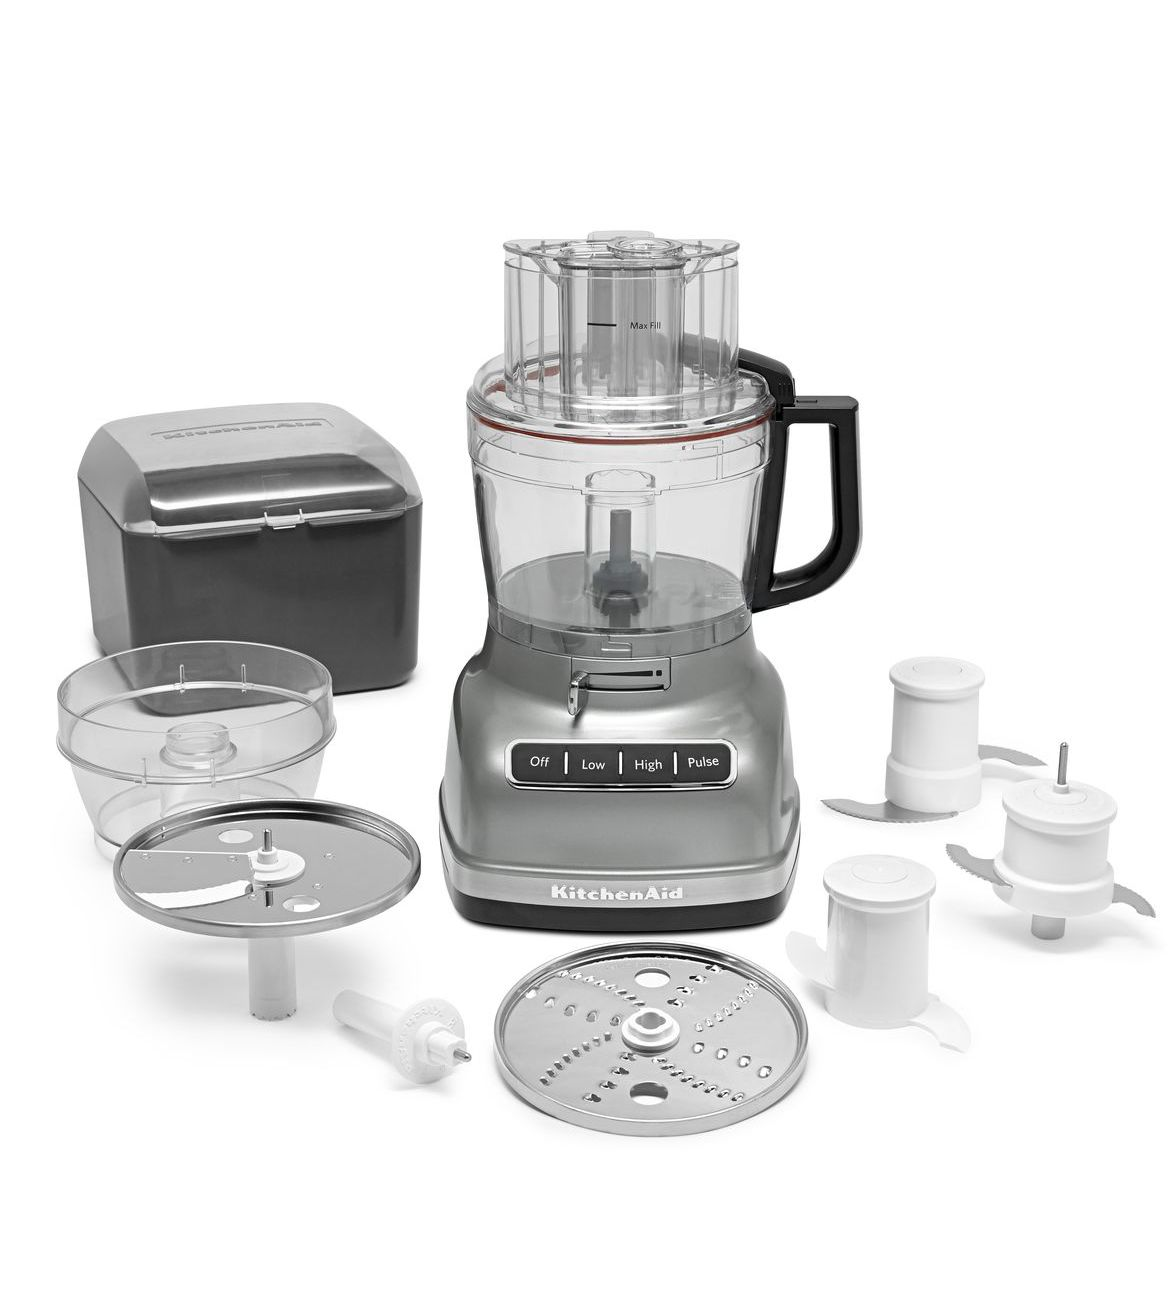 KitchenAid Kit